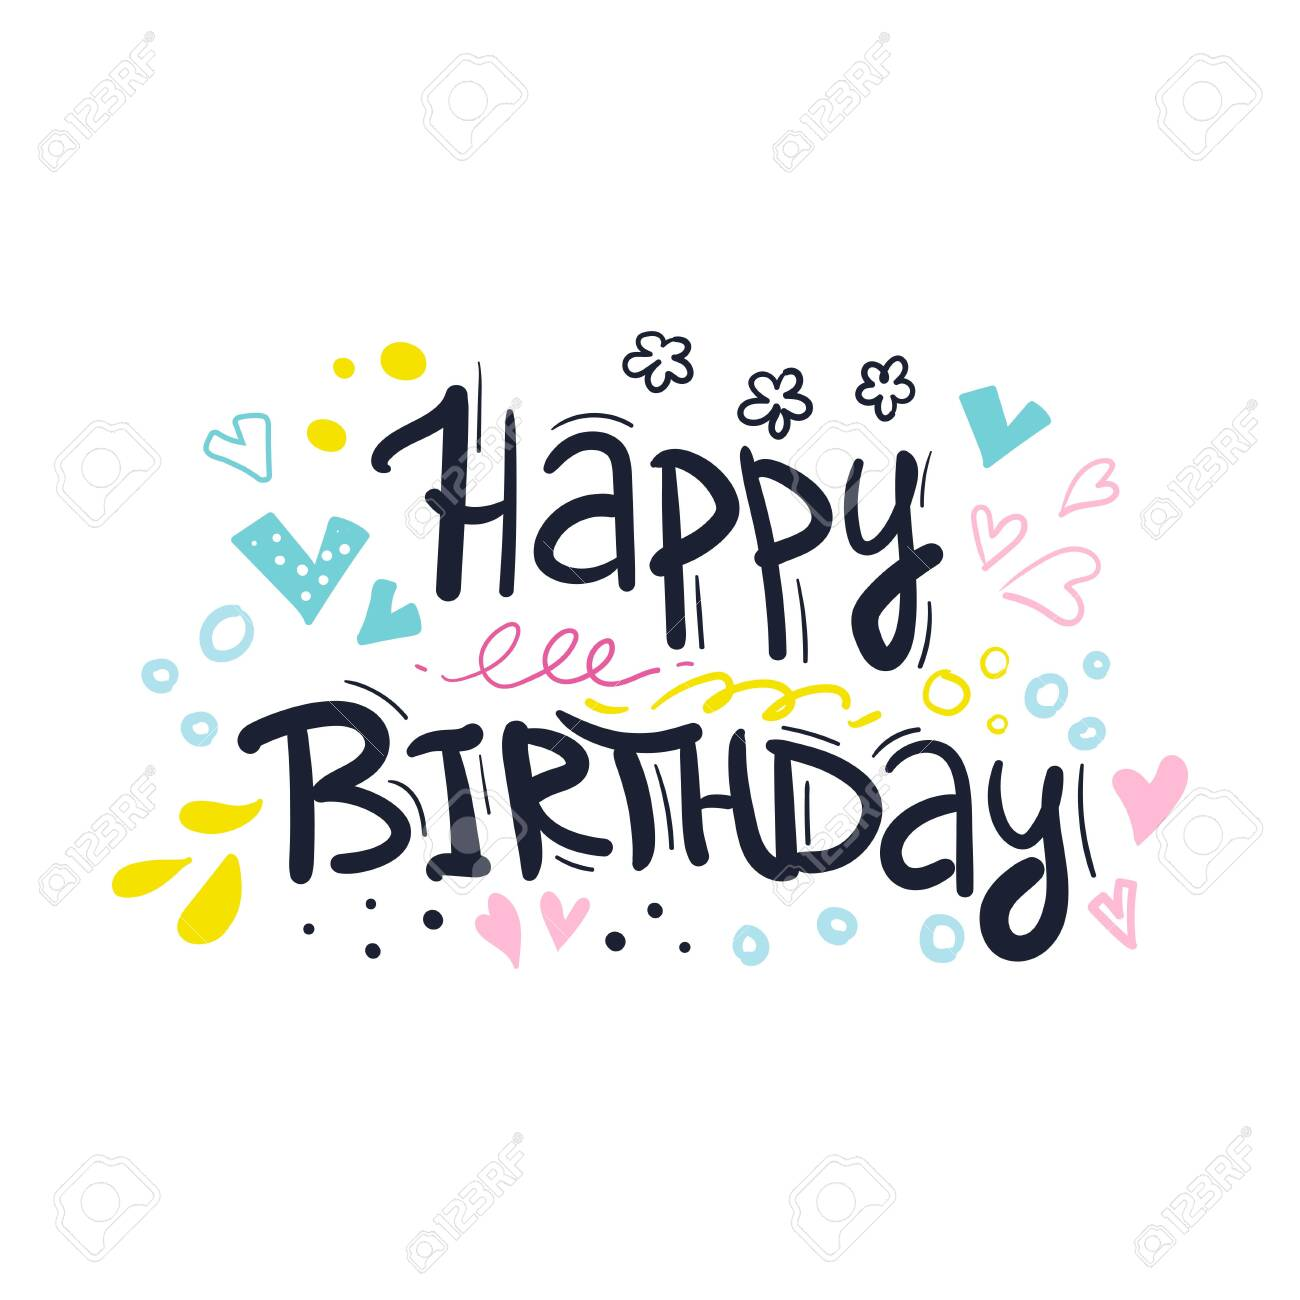 Happy Birthday Typographic Vector Design For Greeting Cards Royalty Free Cliparts Vectors And Stock Illustration Image 130141286